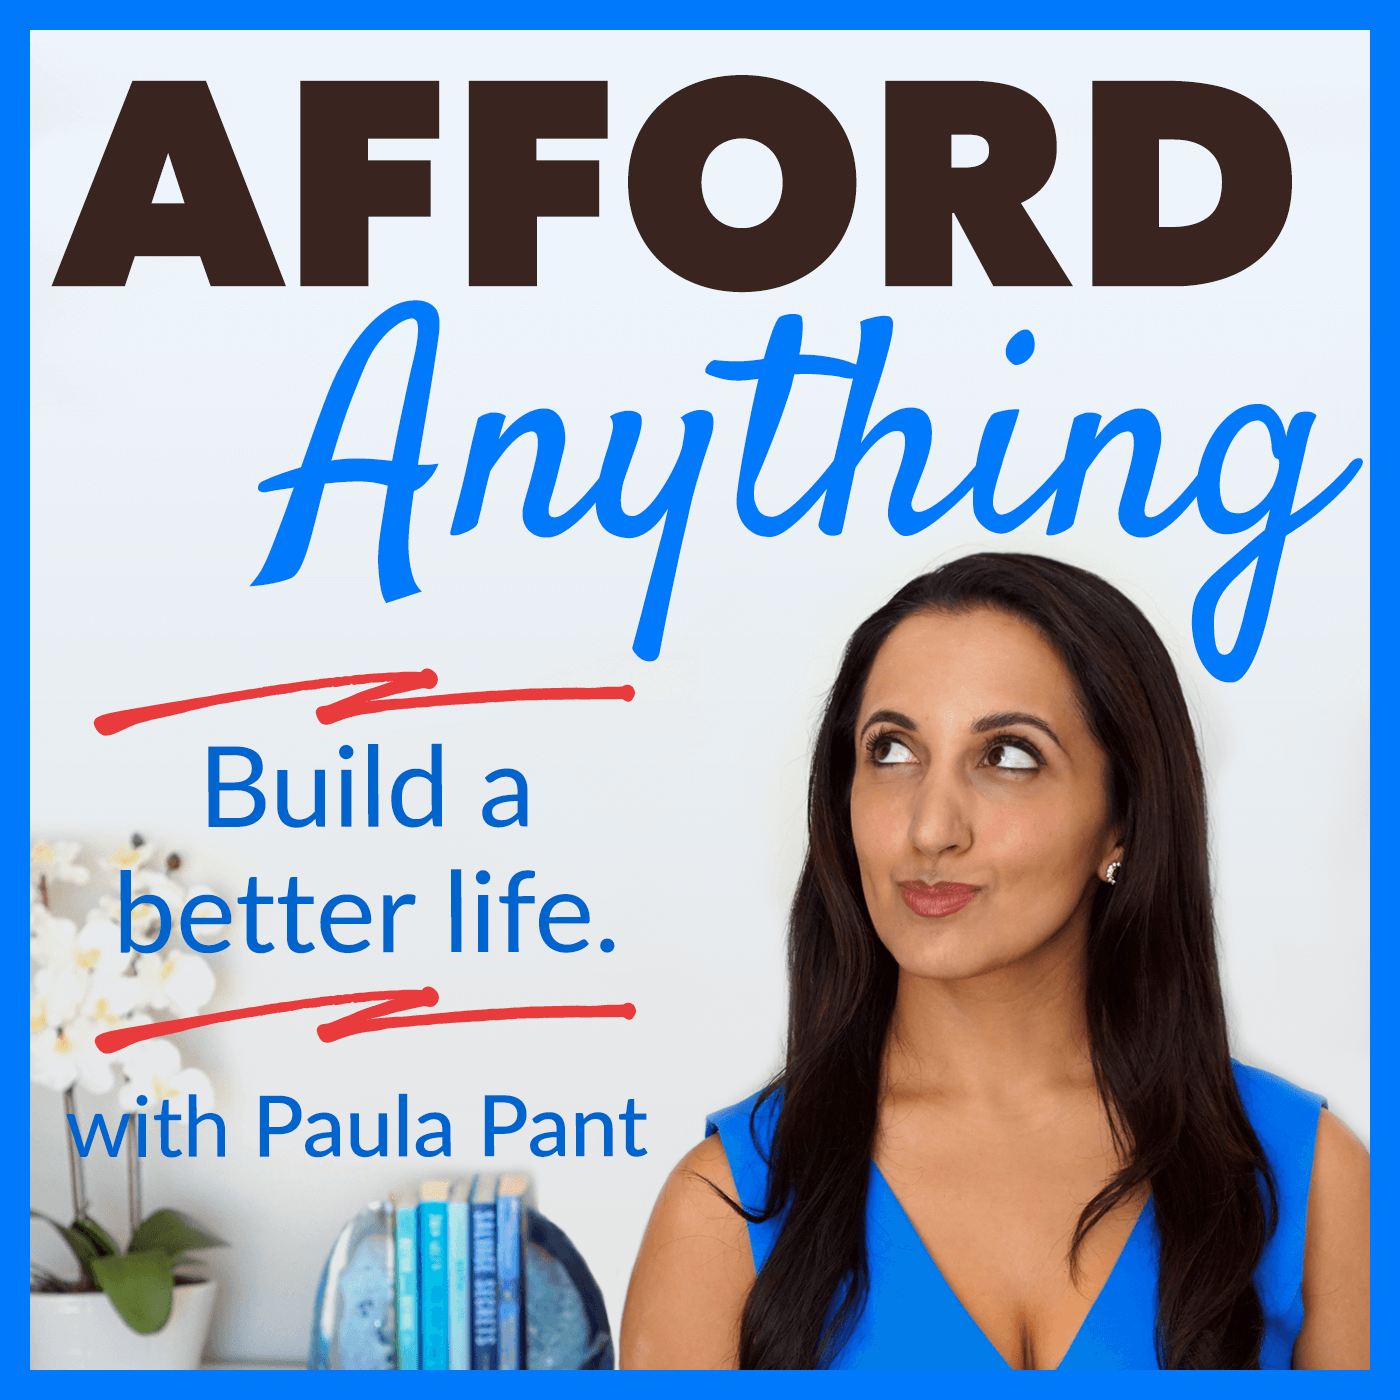 Afford Anything - Build a Better Life - with Paula Pant